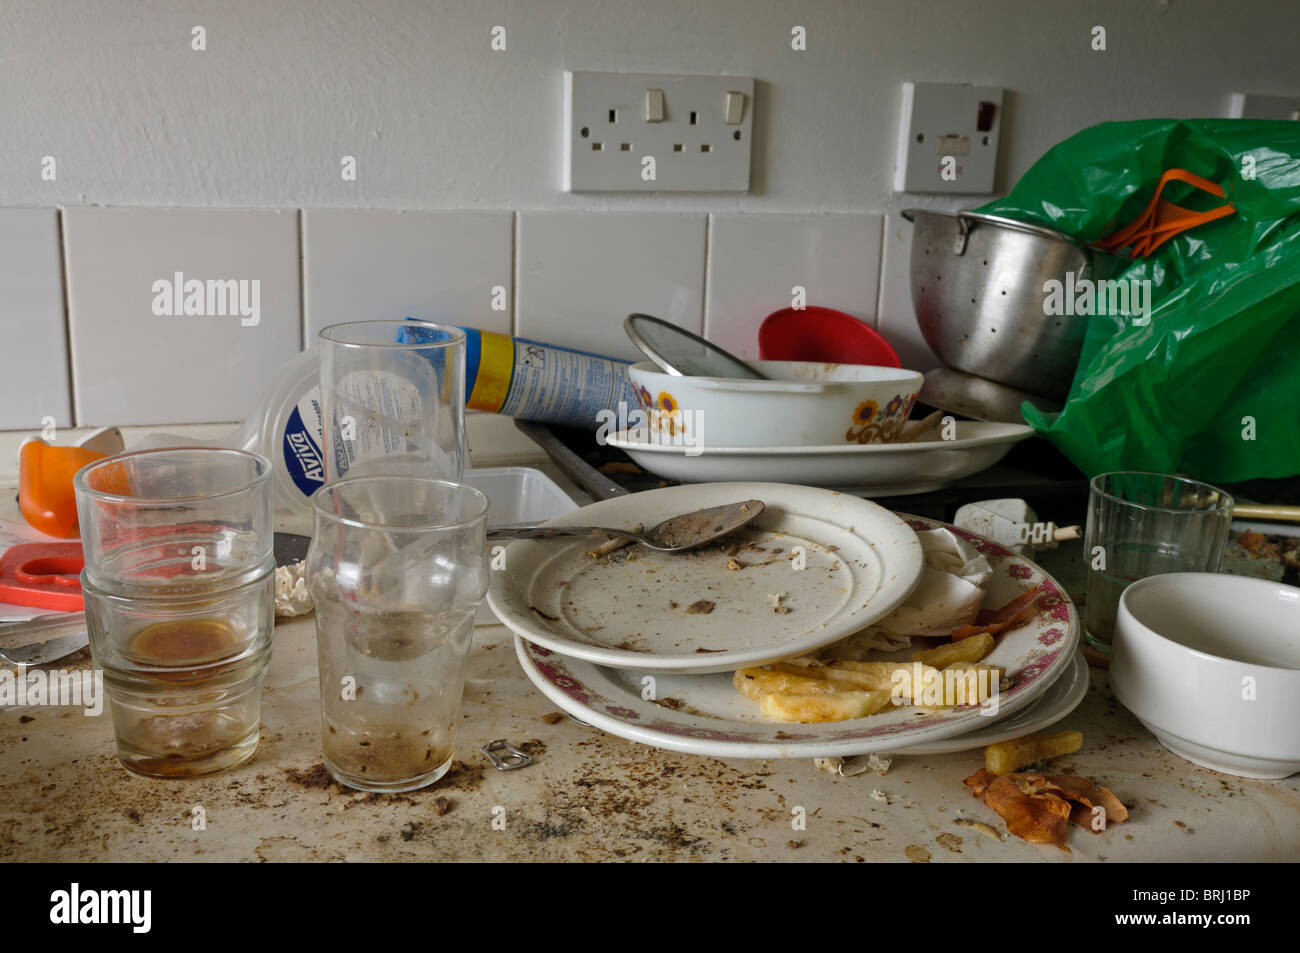 Dirty plate on a dirty kitchen worktop Stock Photo, Royalty Free ...